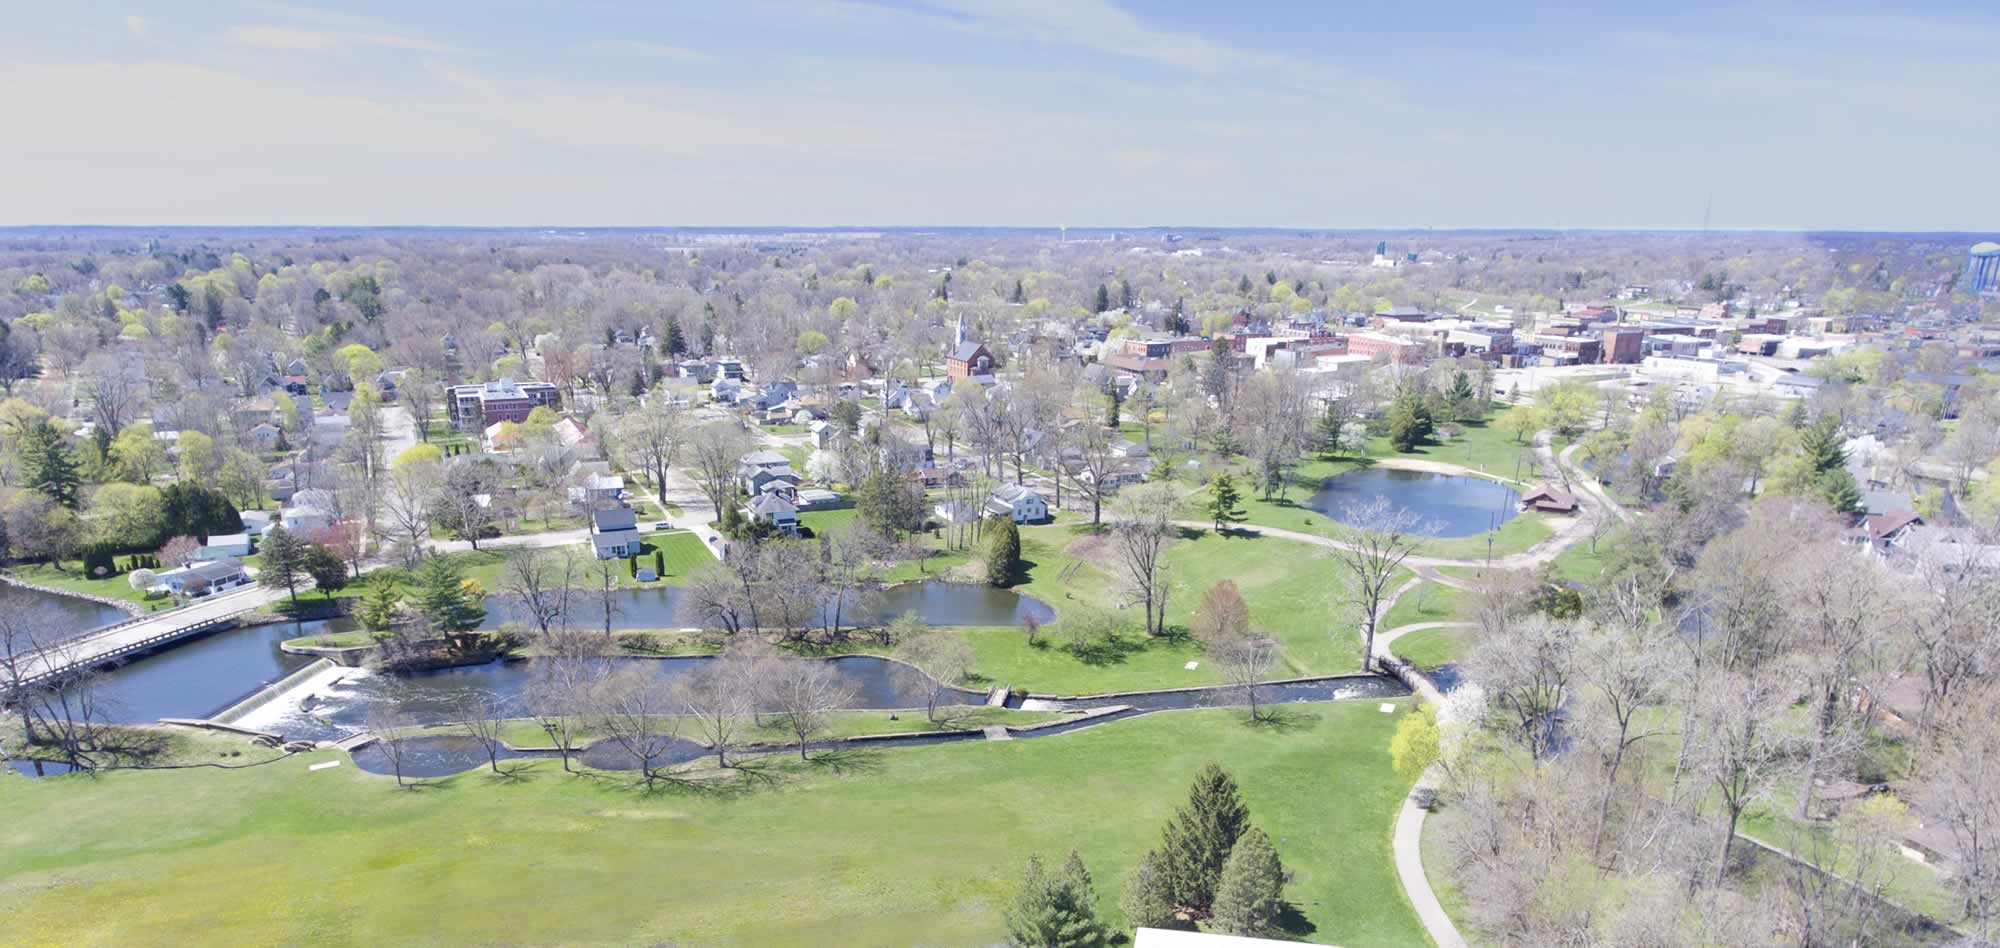 Albion, Michigan - General Guide to the Arts & Trails